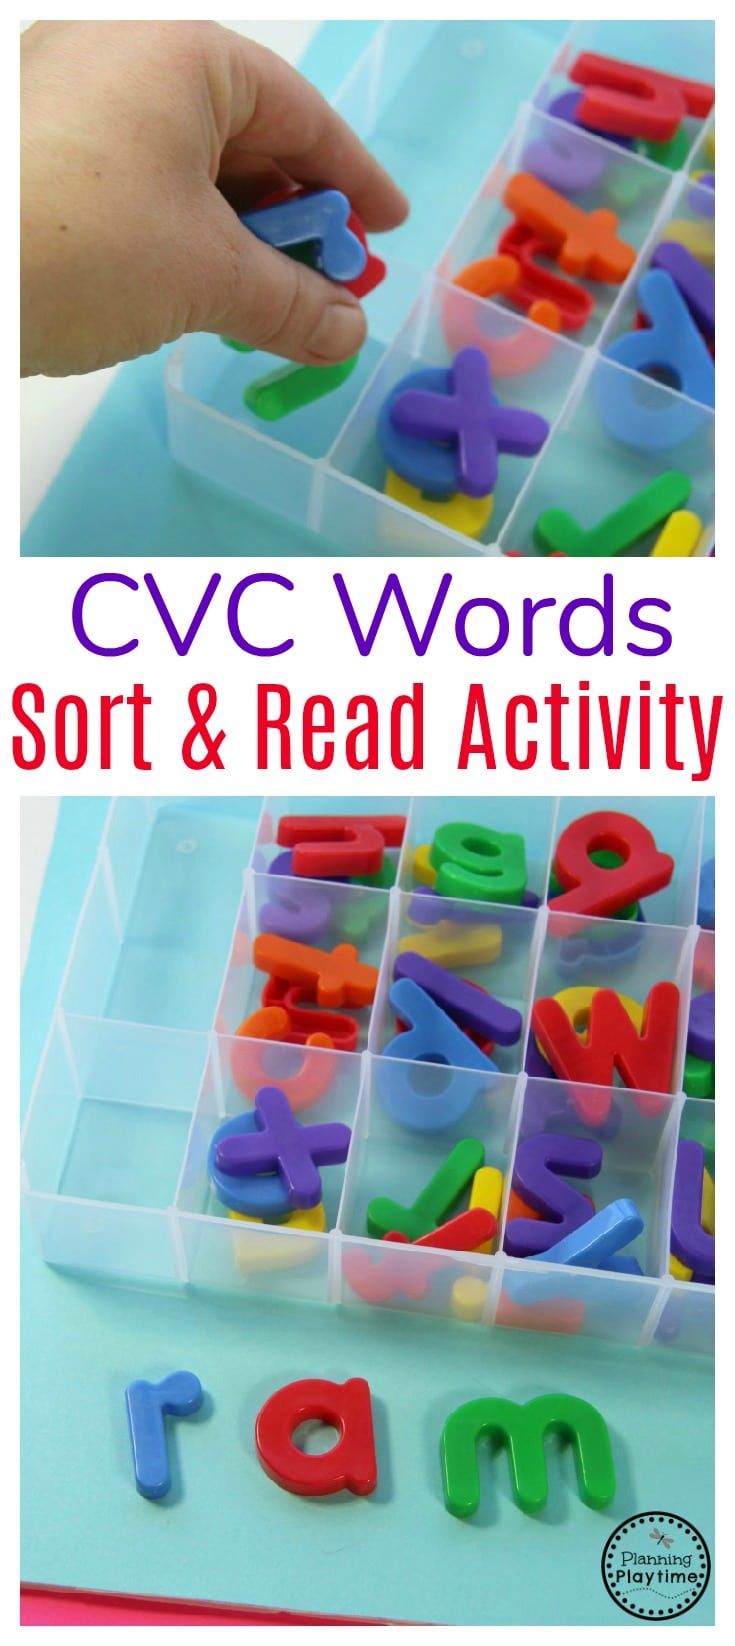 Kinder Reading Activity - Sort and Read CVC Words.